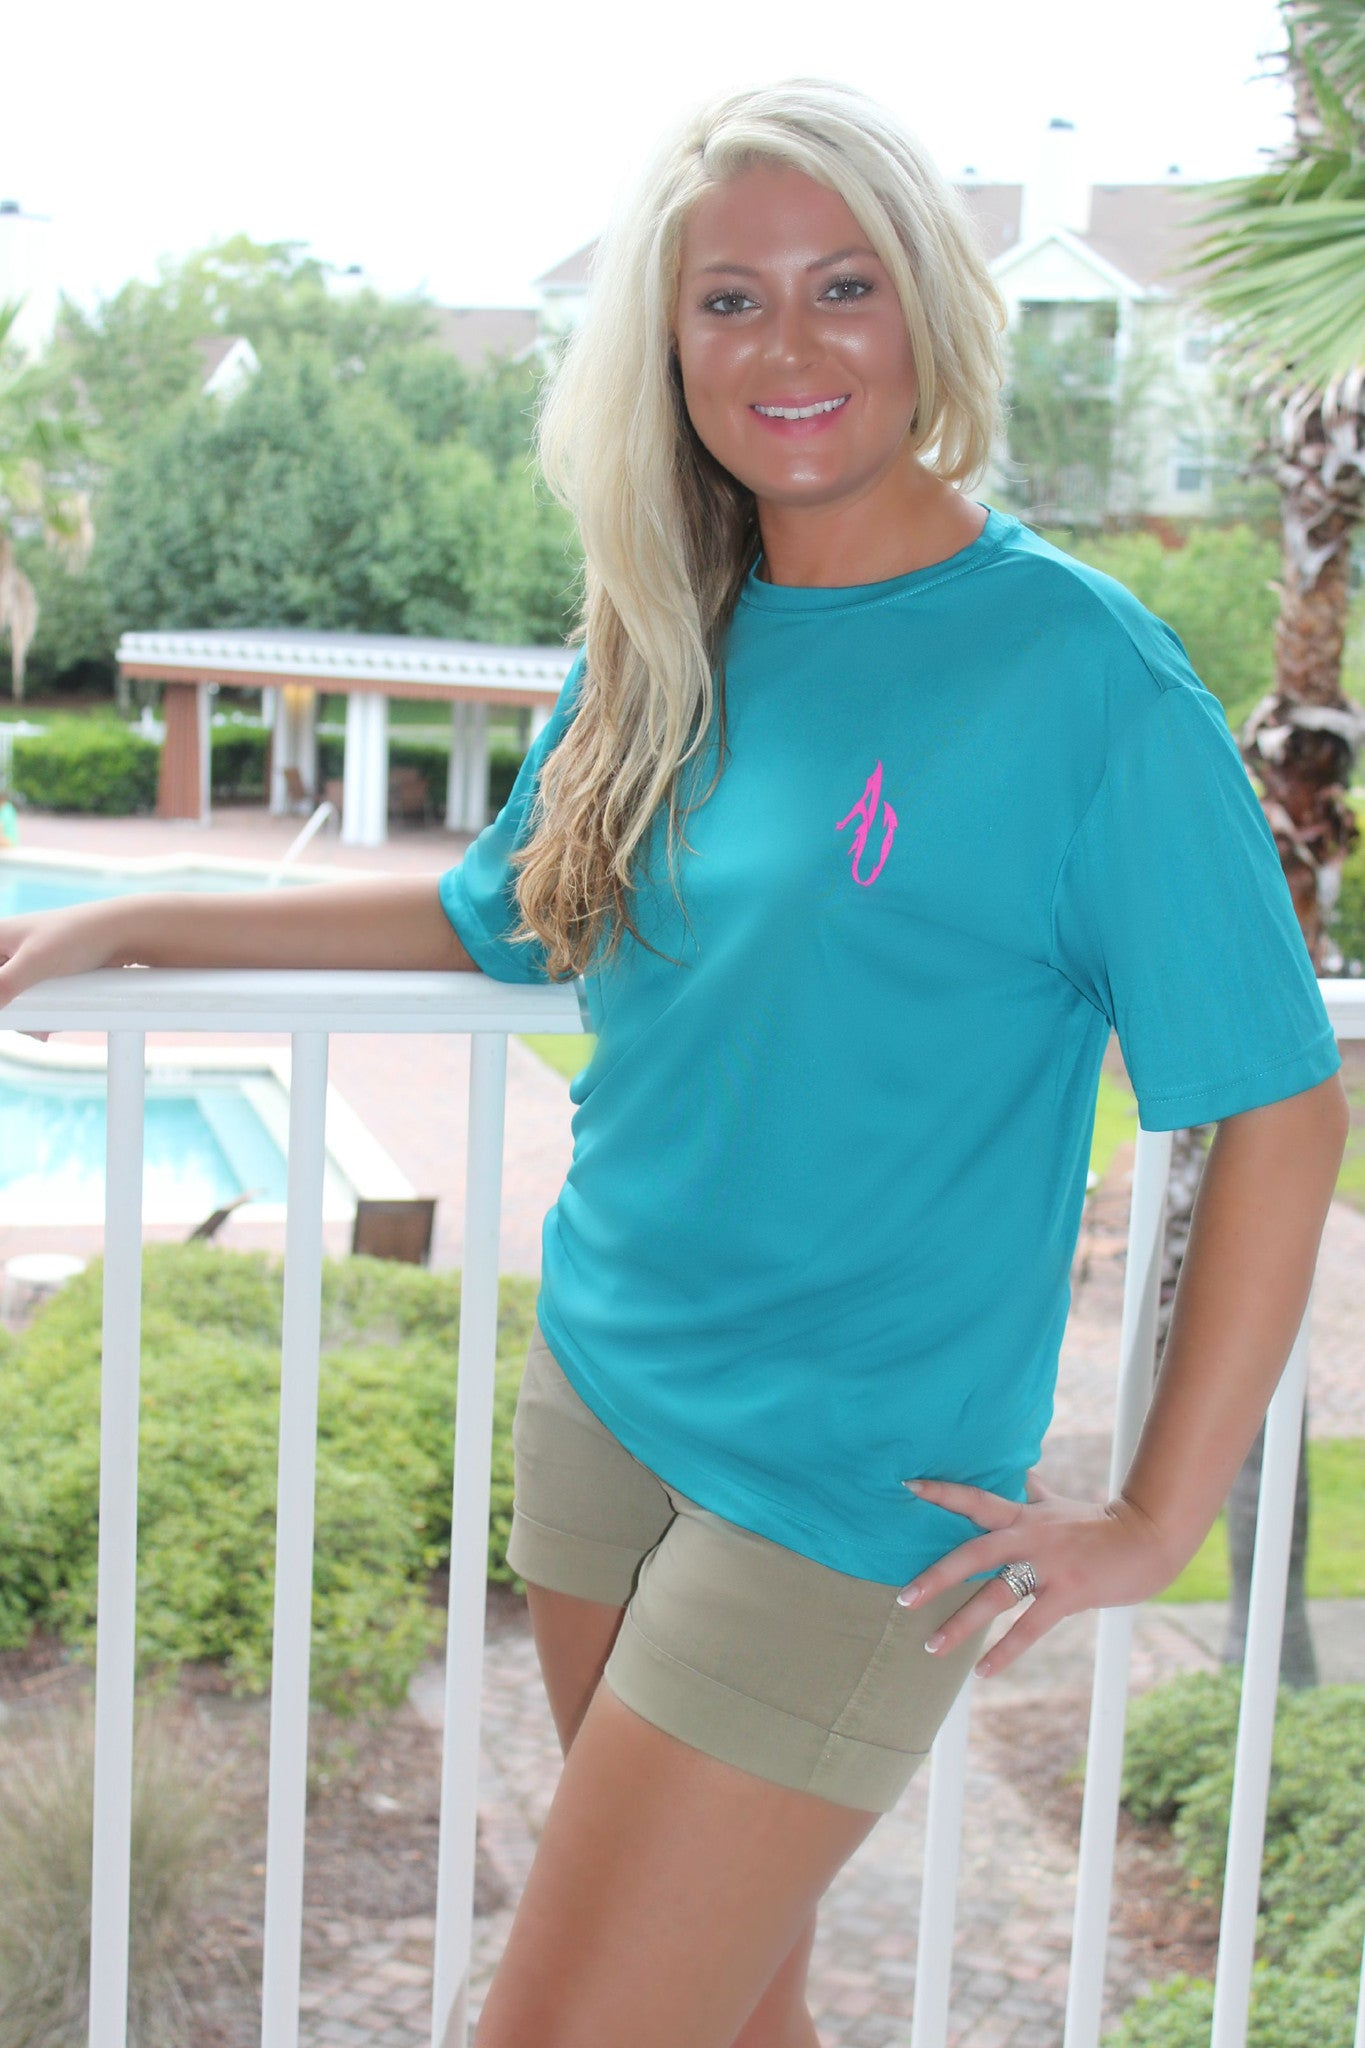 Angler Up: Short Sleeve Performance Tee, Turquoise/Pink